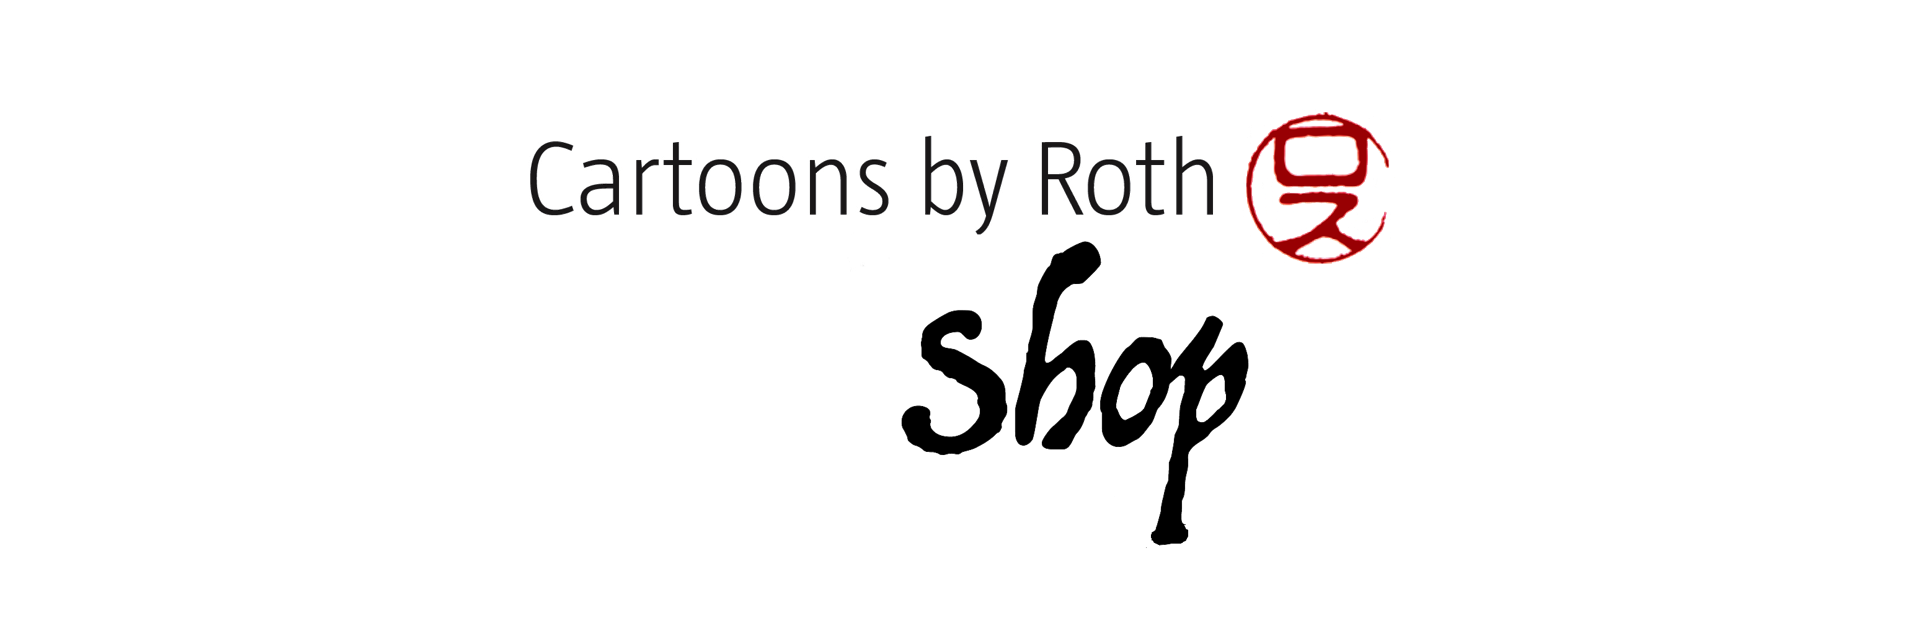 Cartoons by Roth Shop Logo